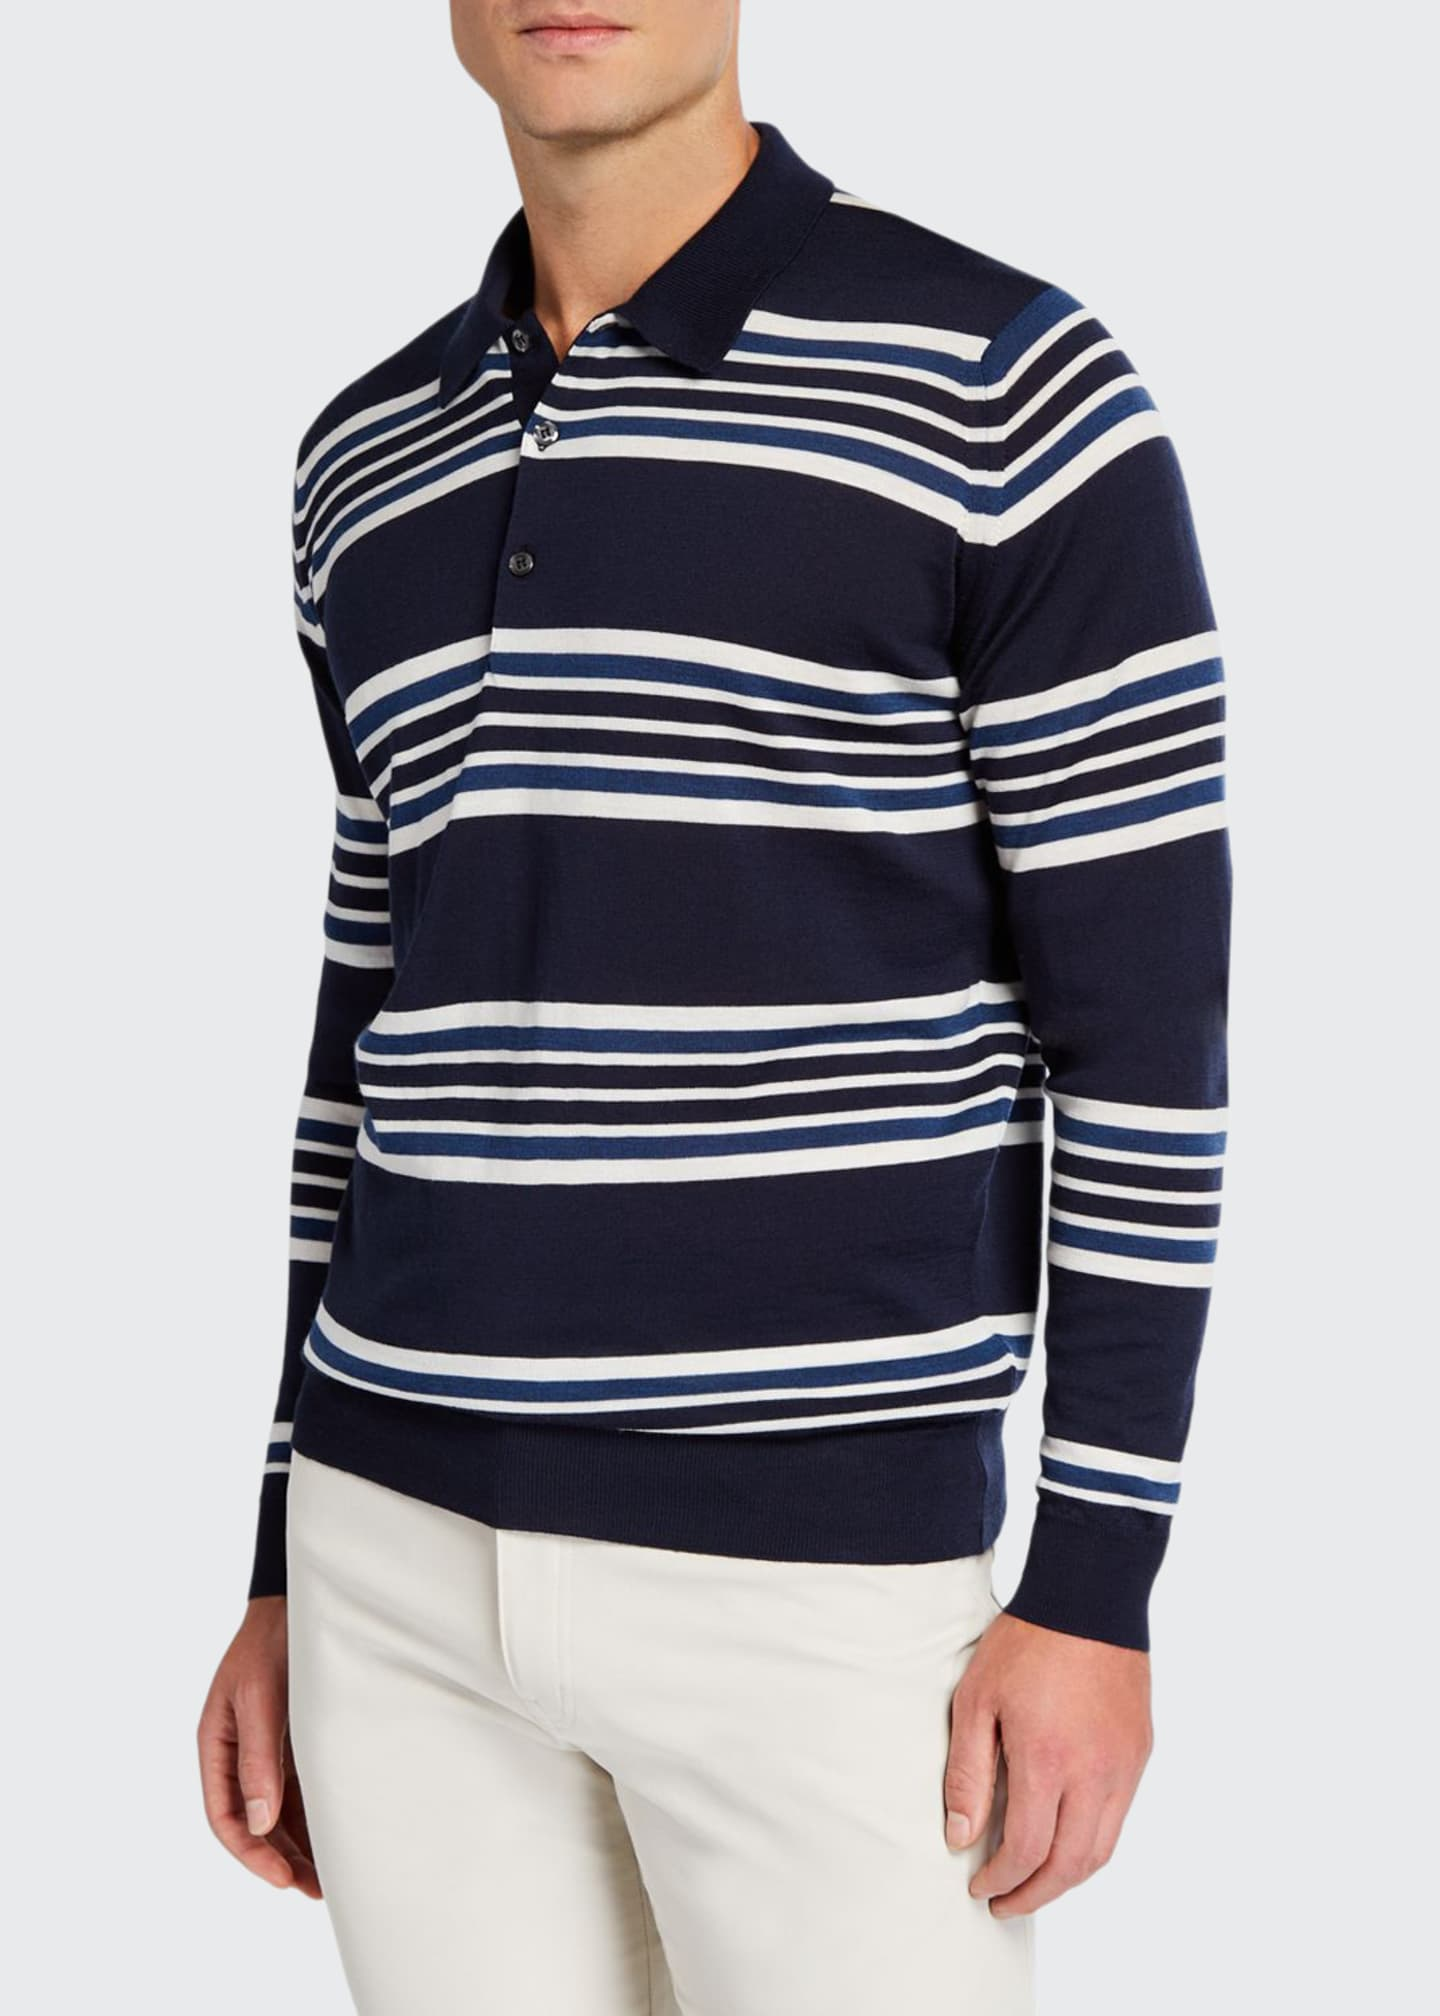 Lou Dalton x John Smedley Men's Striped Long-Sleeve